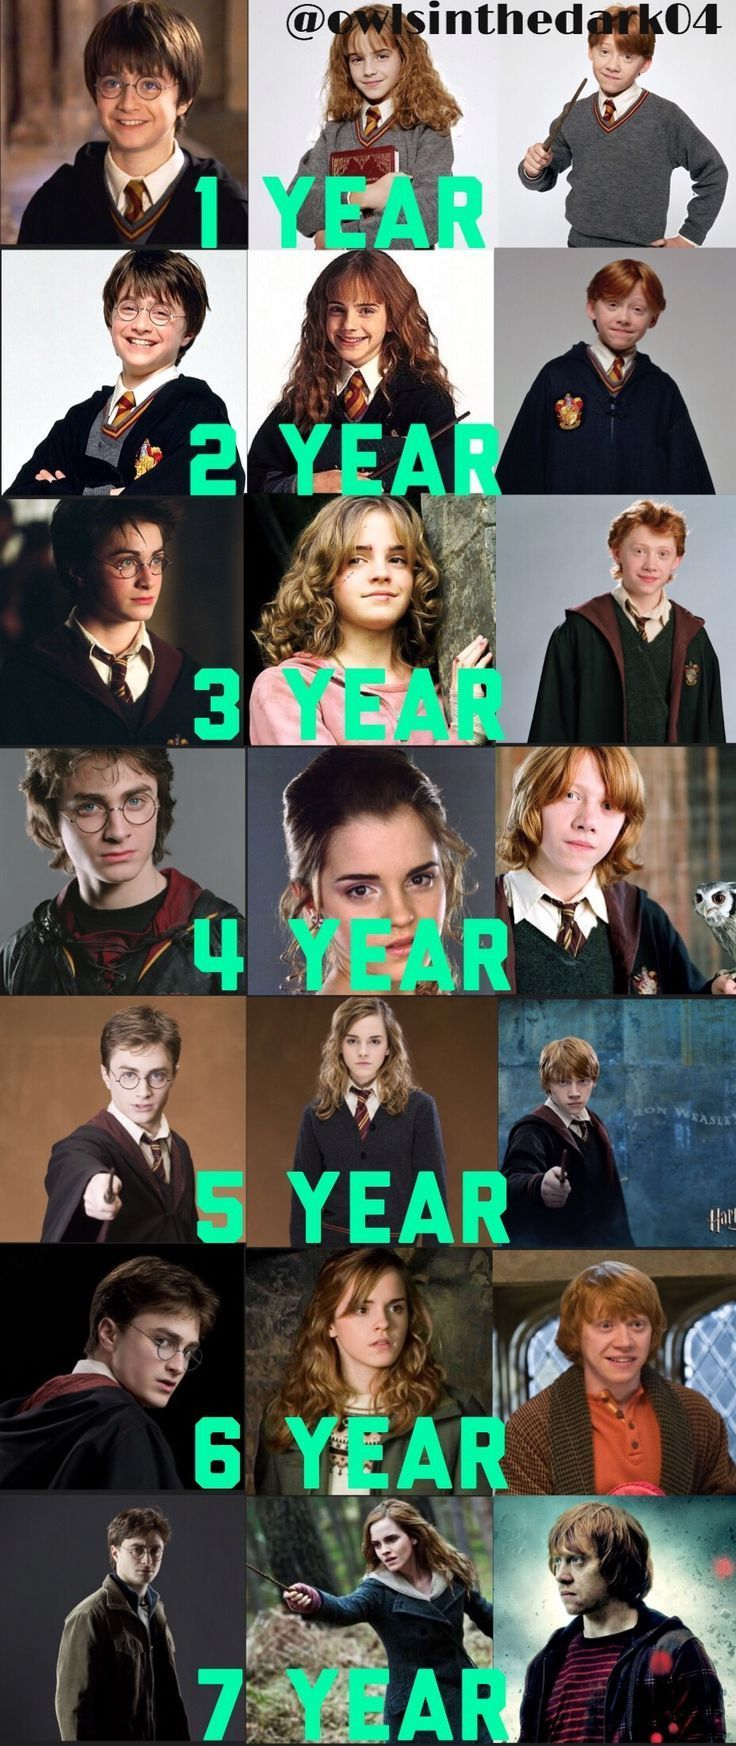 They Stopped Smiling Harry Potter Hermione Harry Potter Cast Harry Potter Pictures